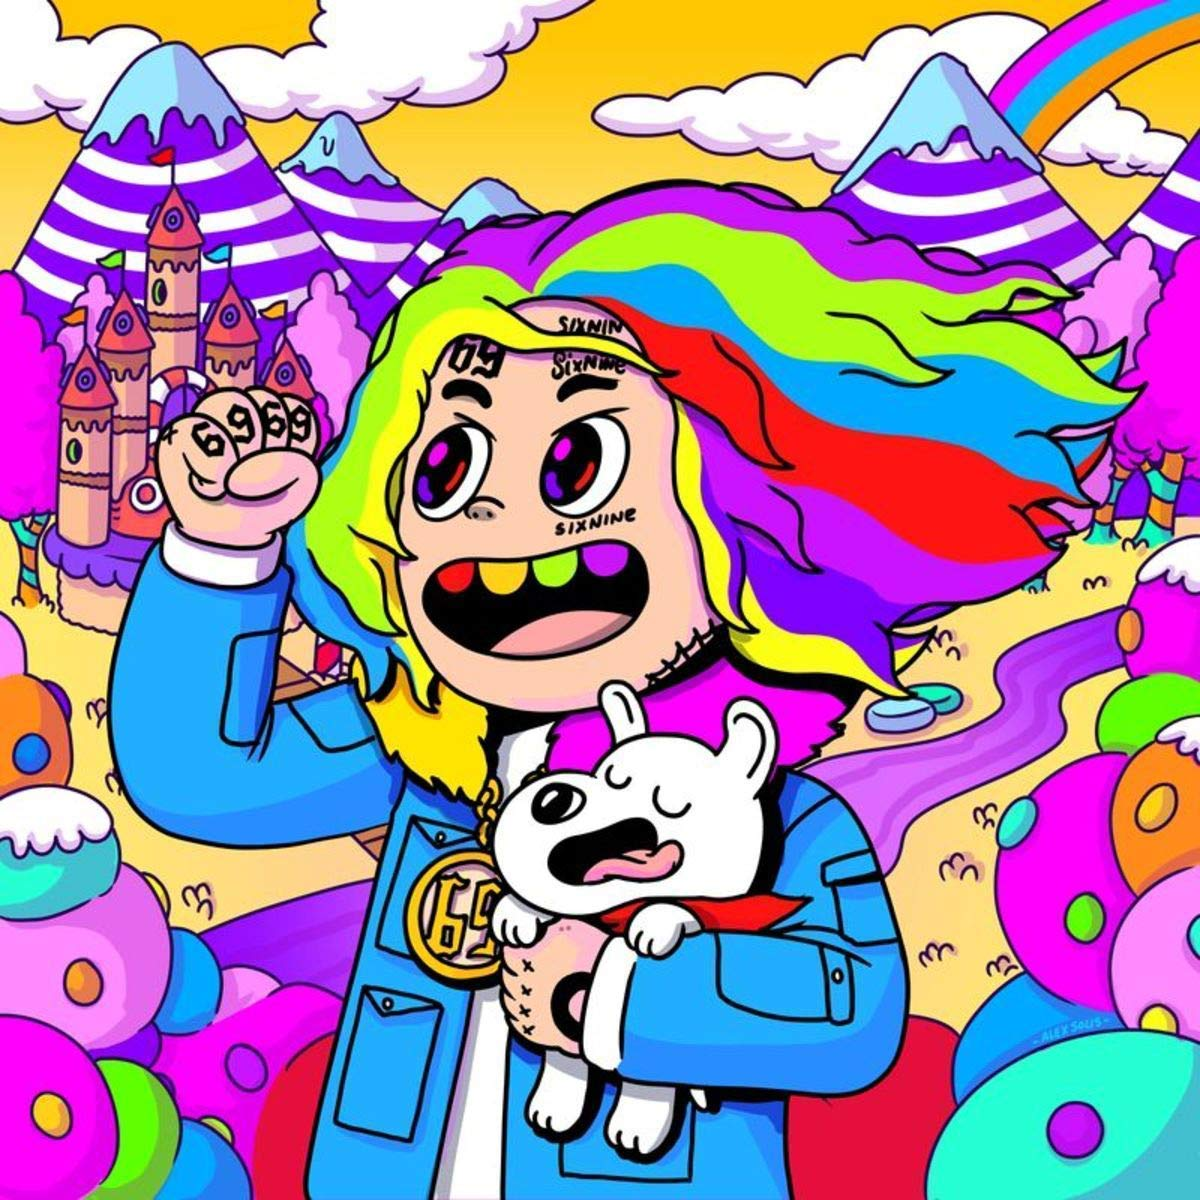 target achiver poster Album Cover Poster Thick 6IX9INE Graduation 12x18 inch Rolled